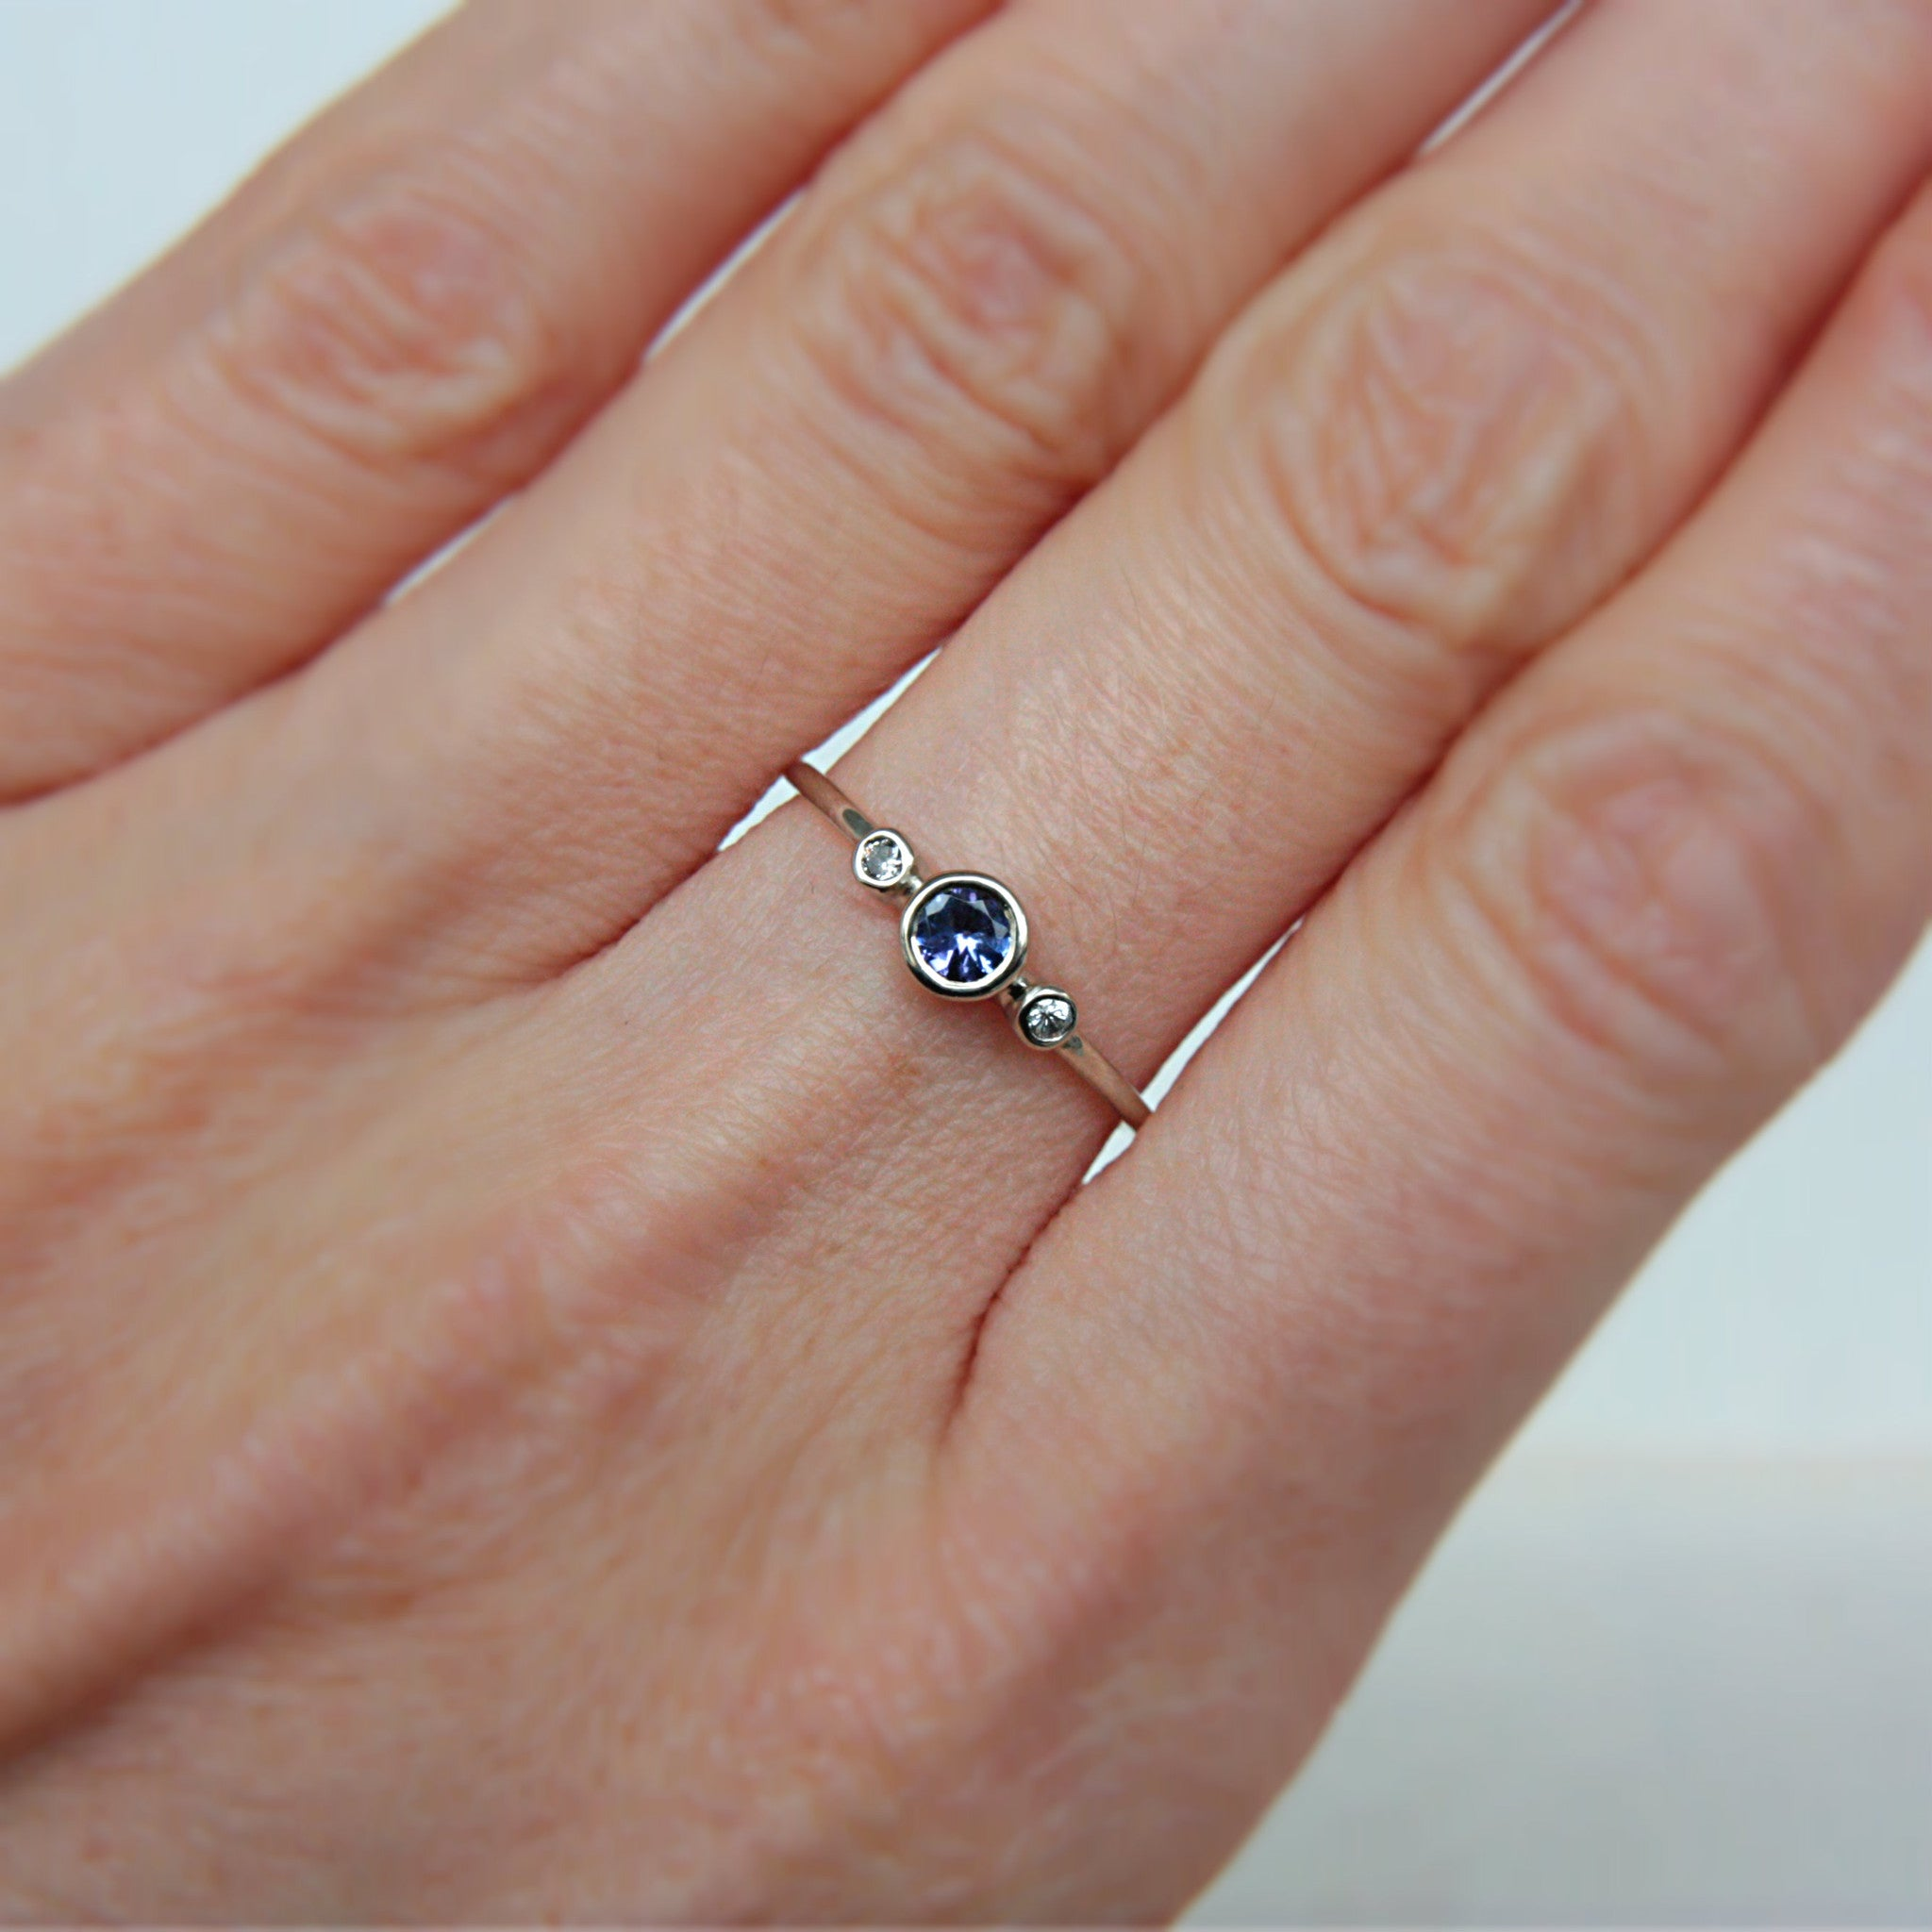 Tanzanite and Diamond Ring 14k White Gold - Manari Design